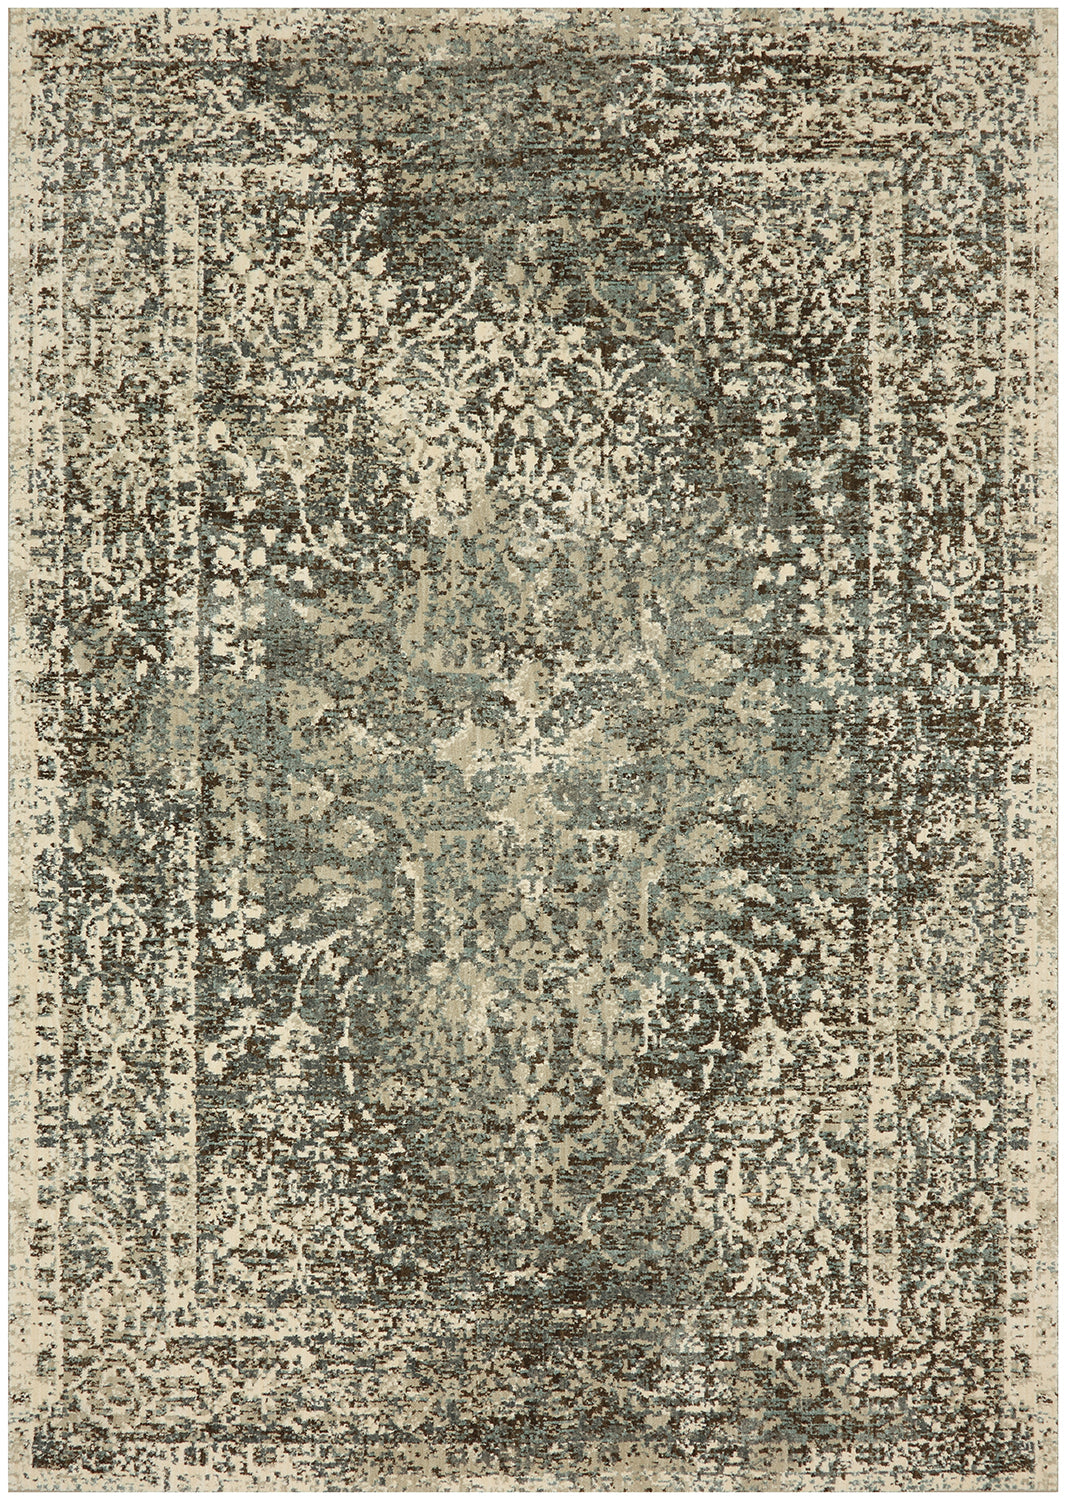 Karastan Touchstone Sanctuary Sandstone by Virginia Langley Area Rug